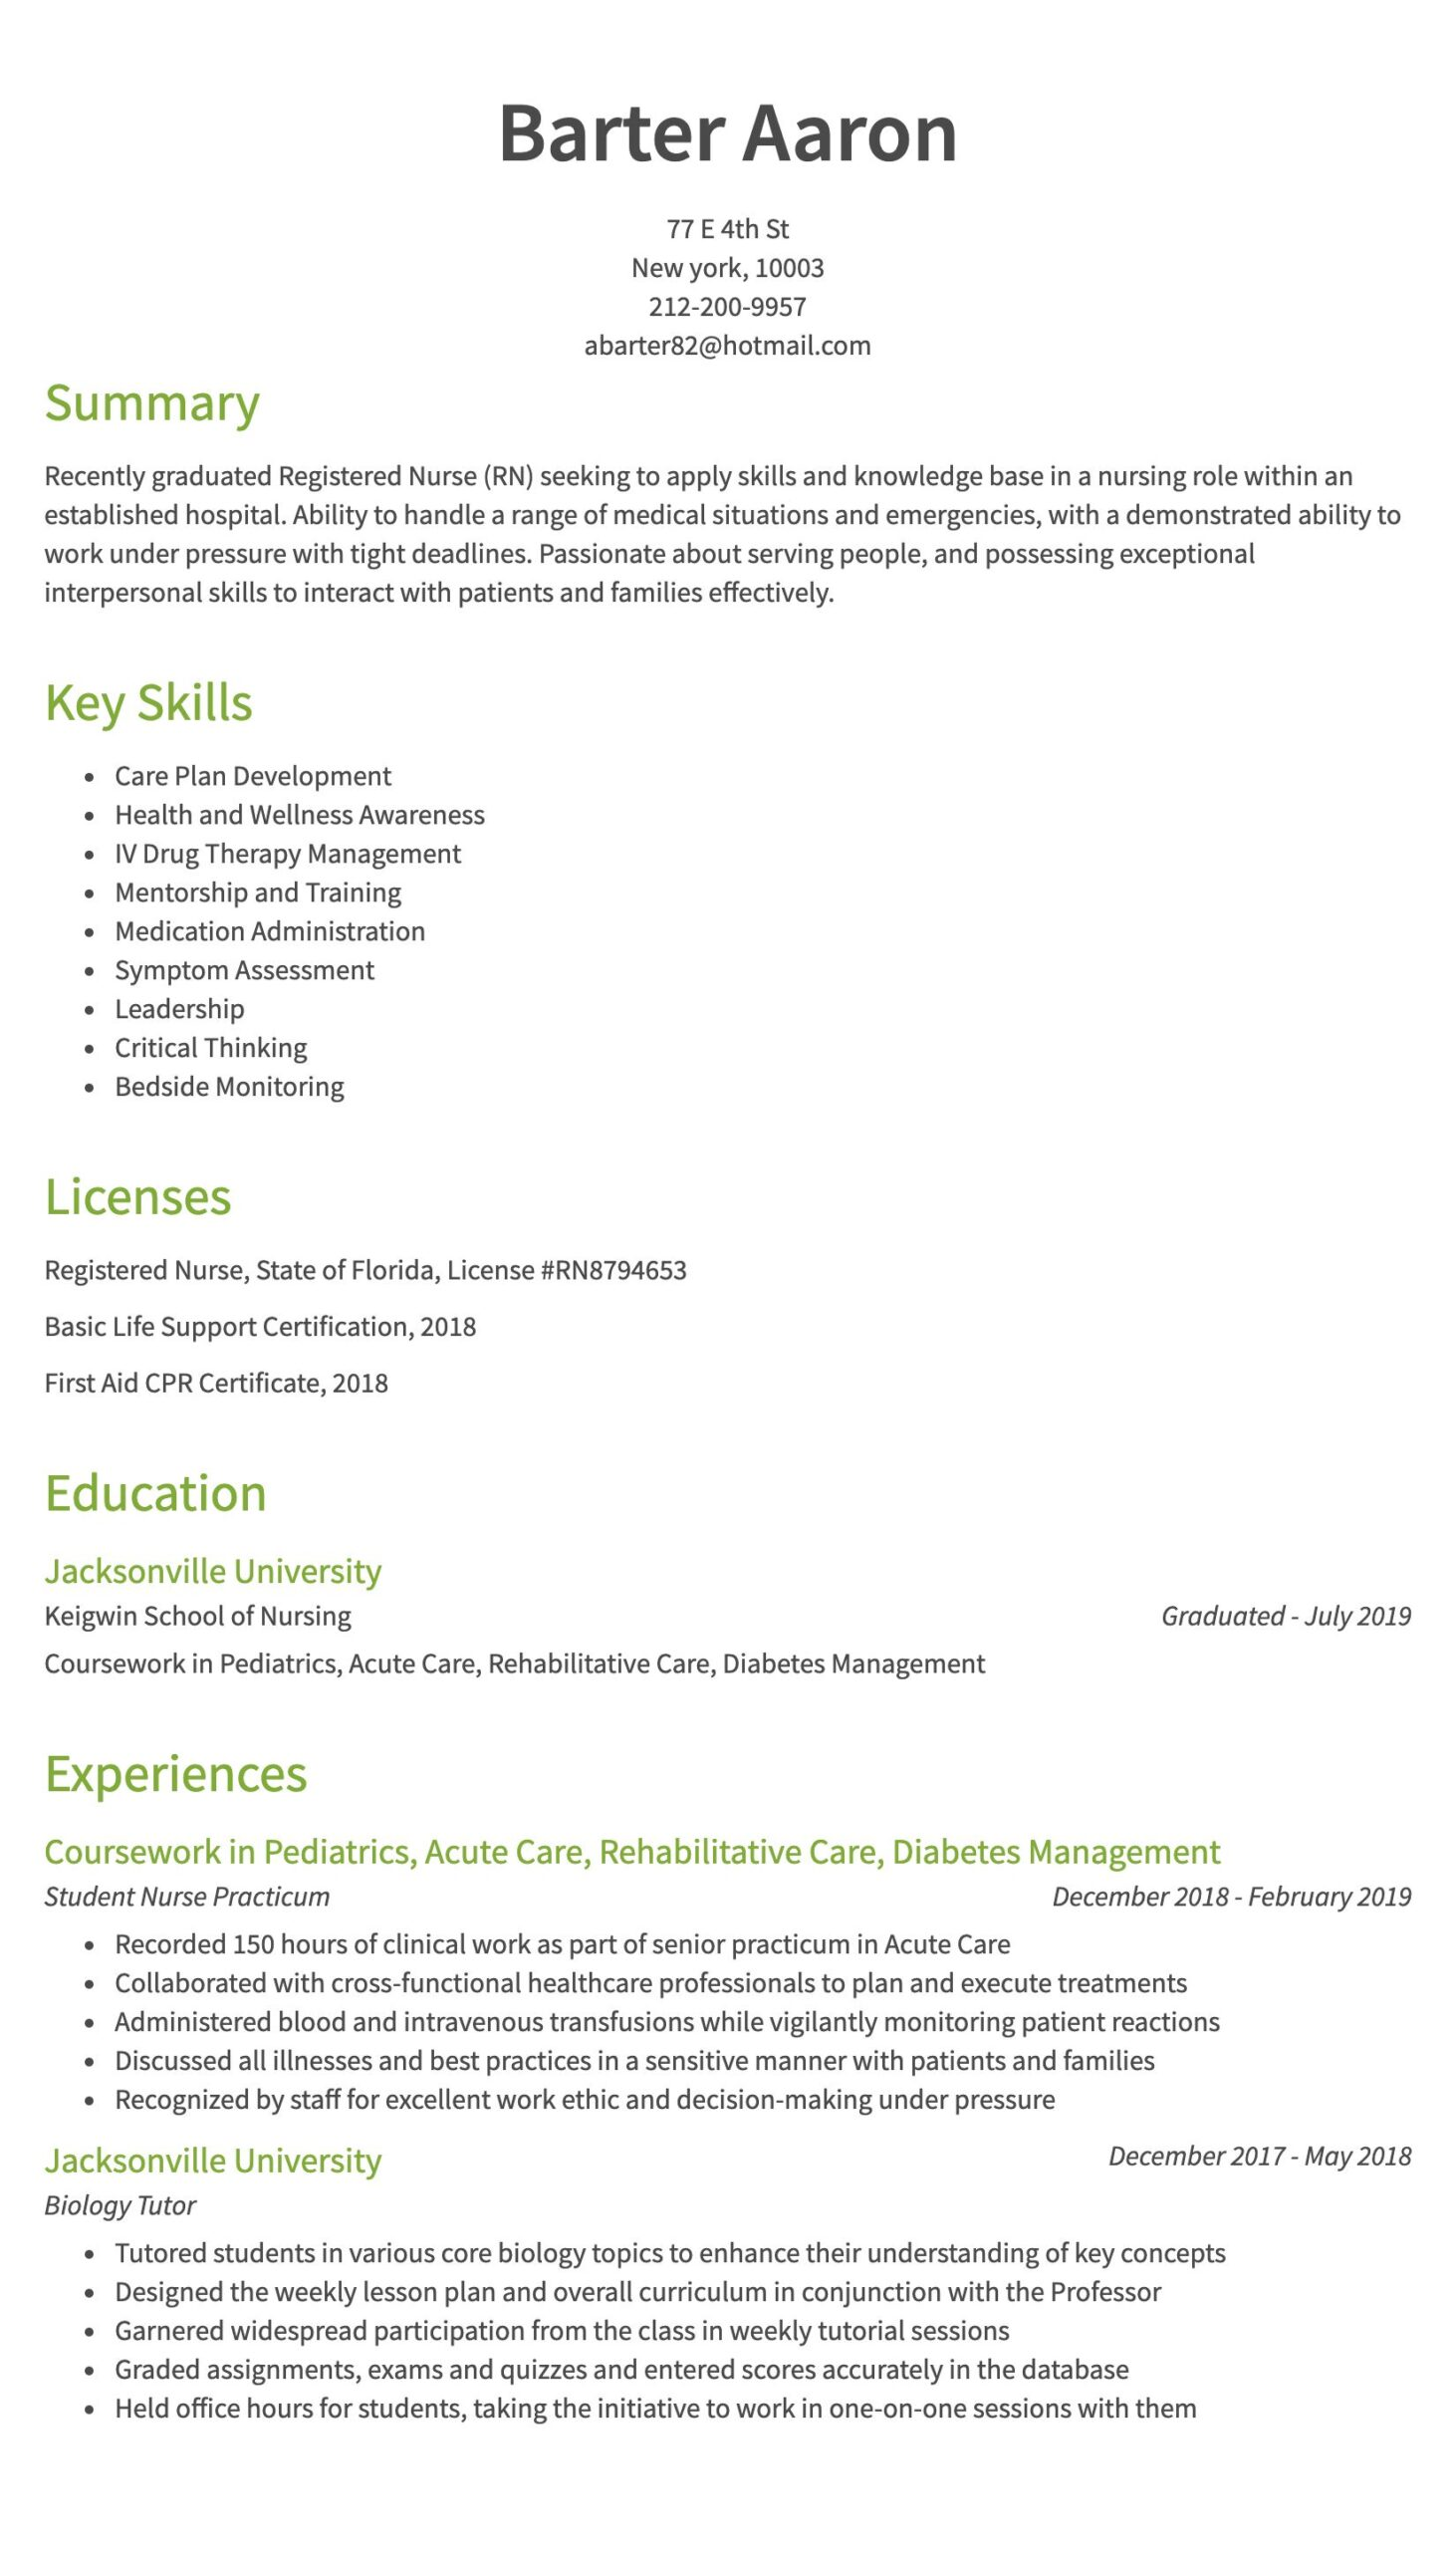 nursing resume examples samples written by rn managers for jobs years of exp best Resume Resume Examples For Nursing Jobs